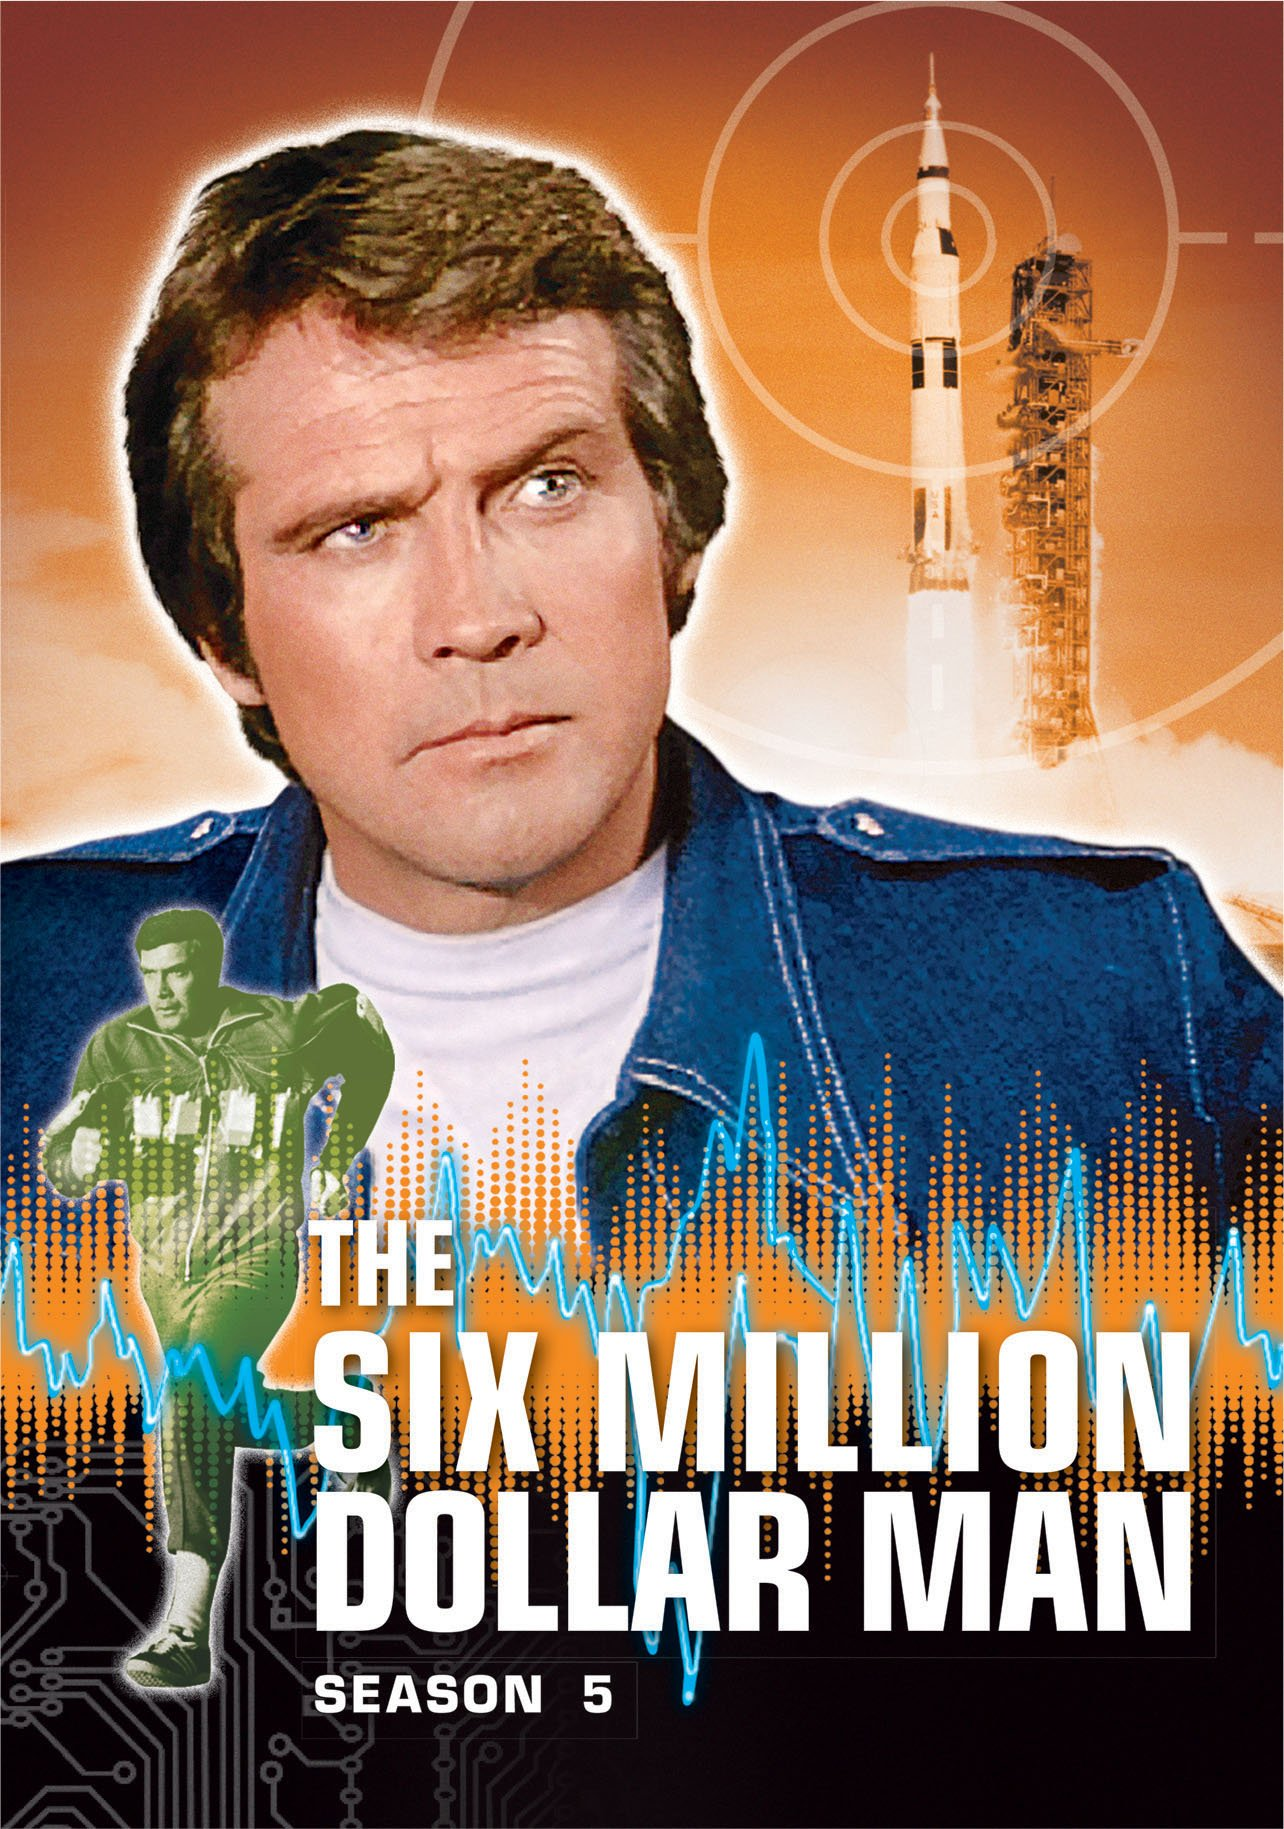 DVD : The Six Million Dollar Man: Season 5 (Boxed Set, Snap Case, 6 Disc)